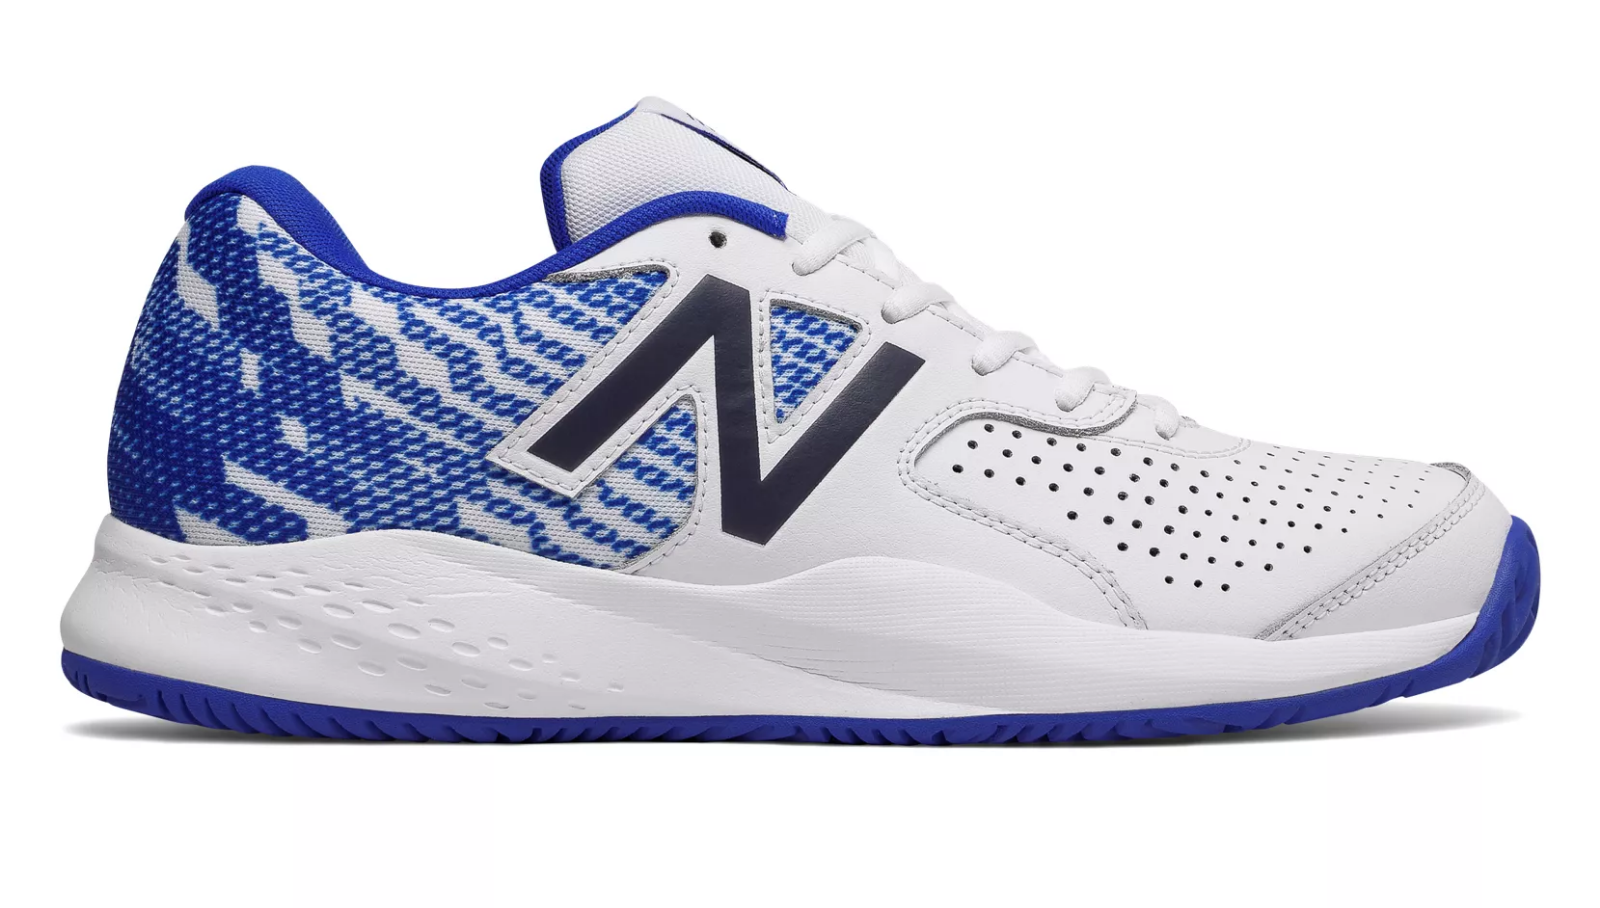 New Balance MCH696R3 Men's 696v3 White bluee Hard Court Performance Tennis shoes